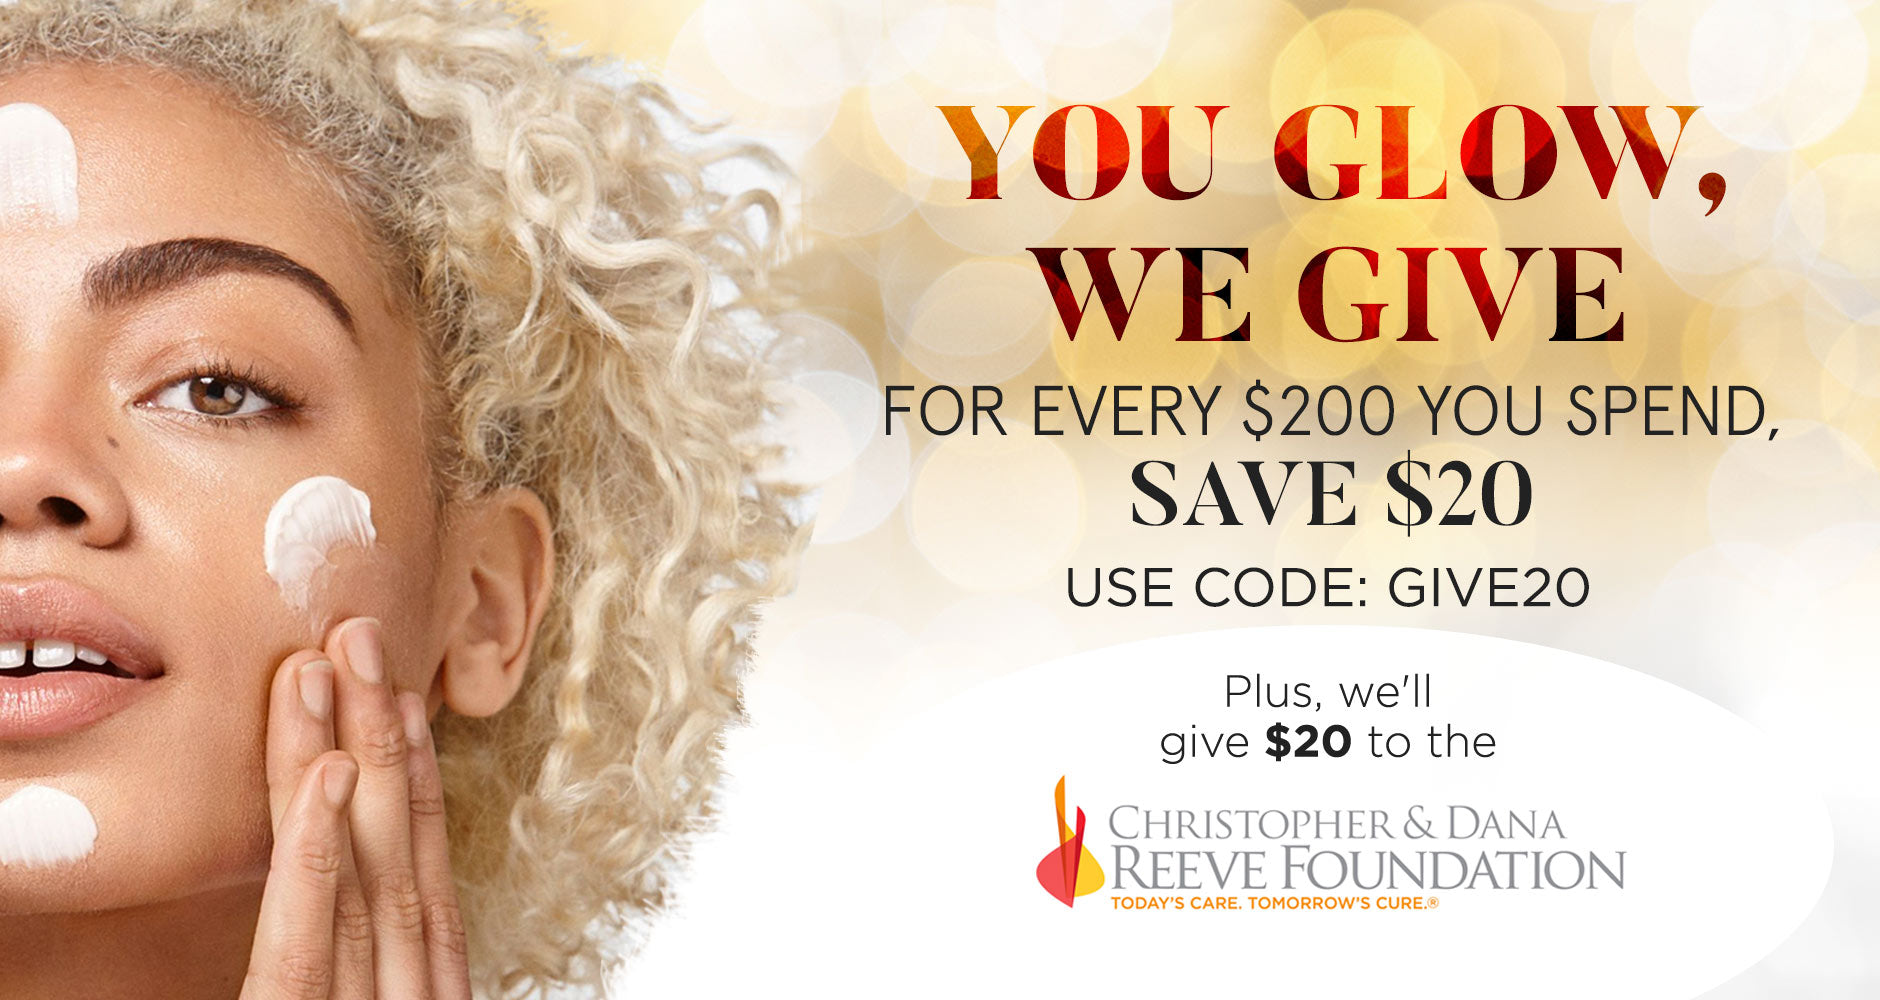 You Glow, We Give support Reeve foundation skincare